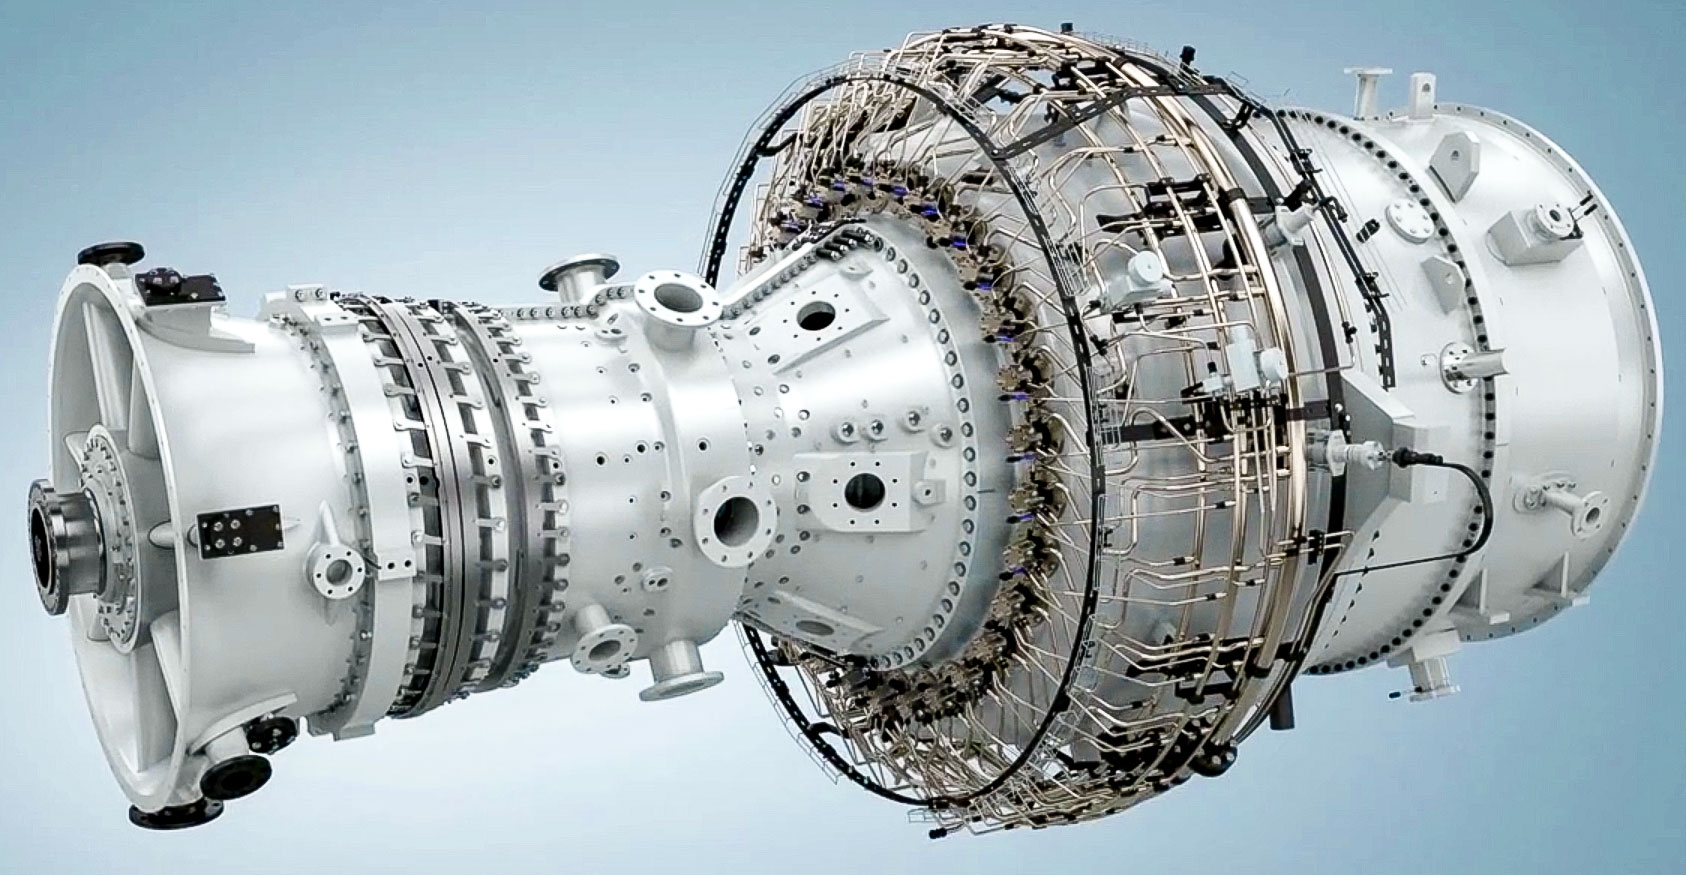 Video: See the Technology behind HEP's Natural Gas Turbines